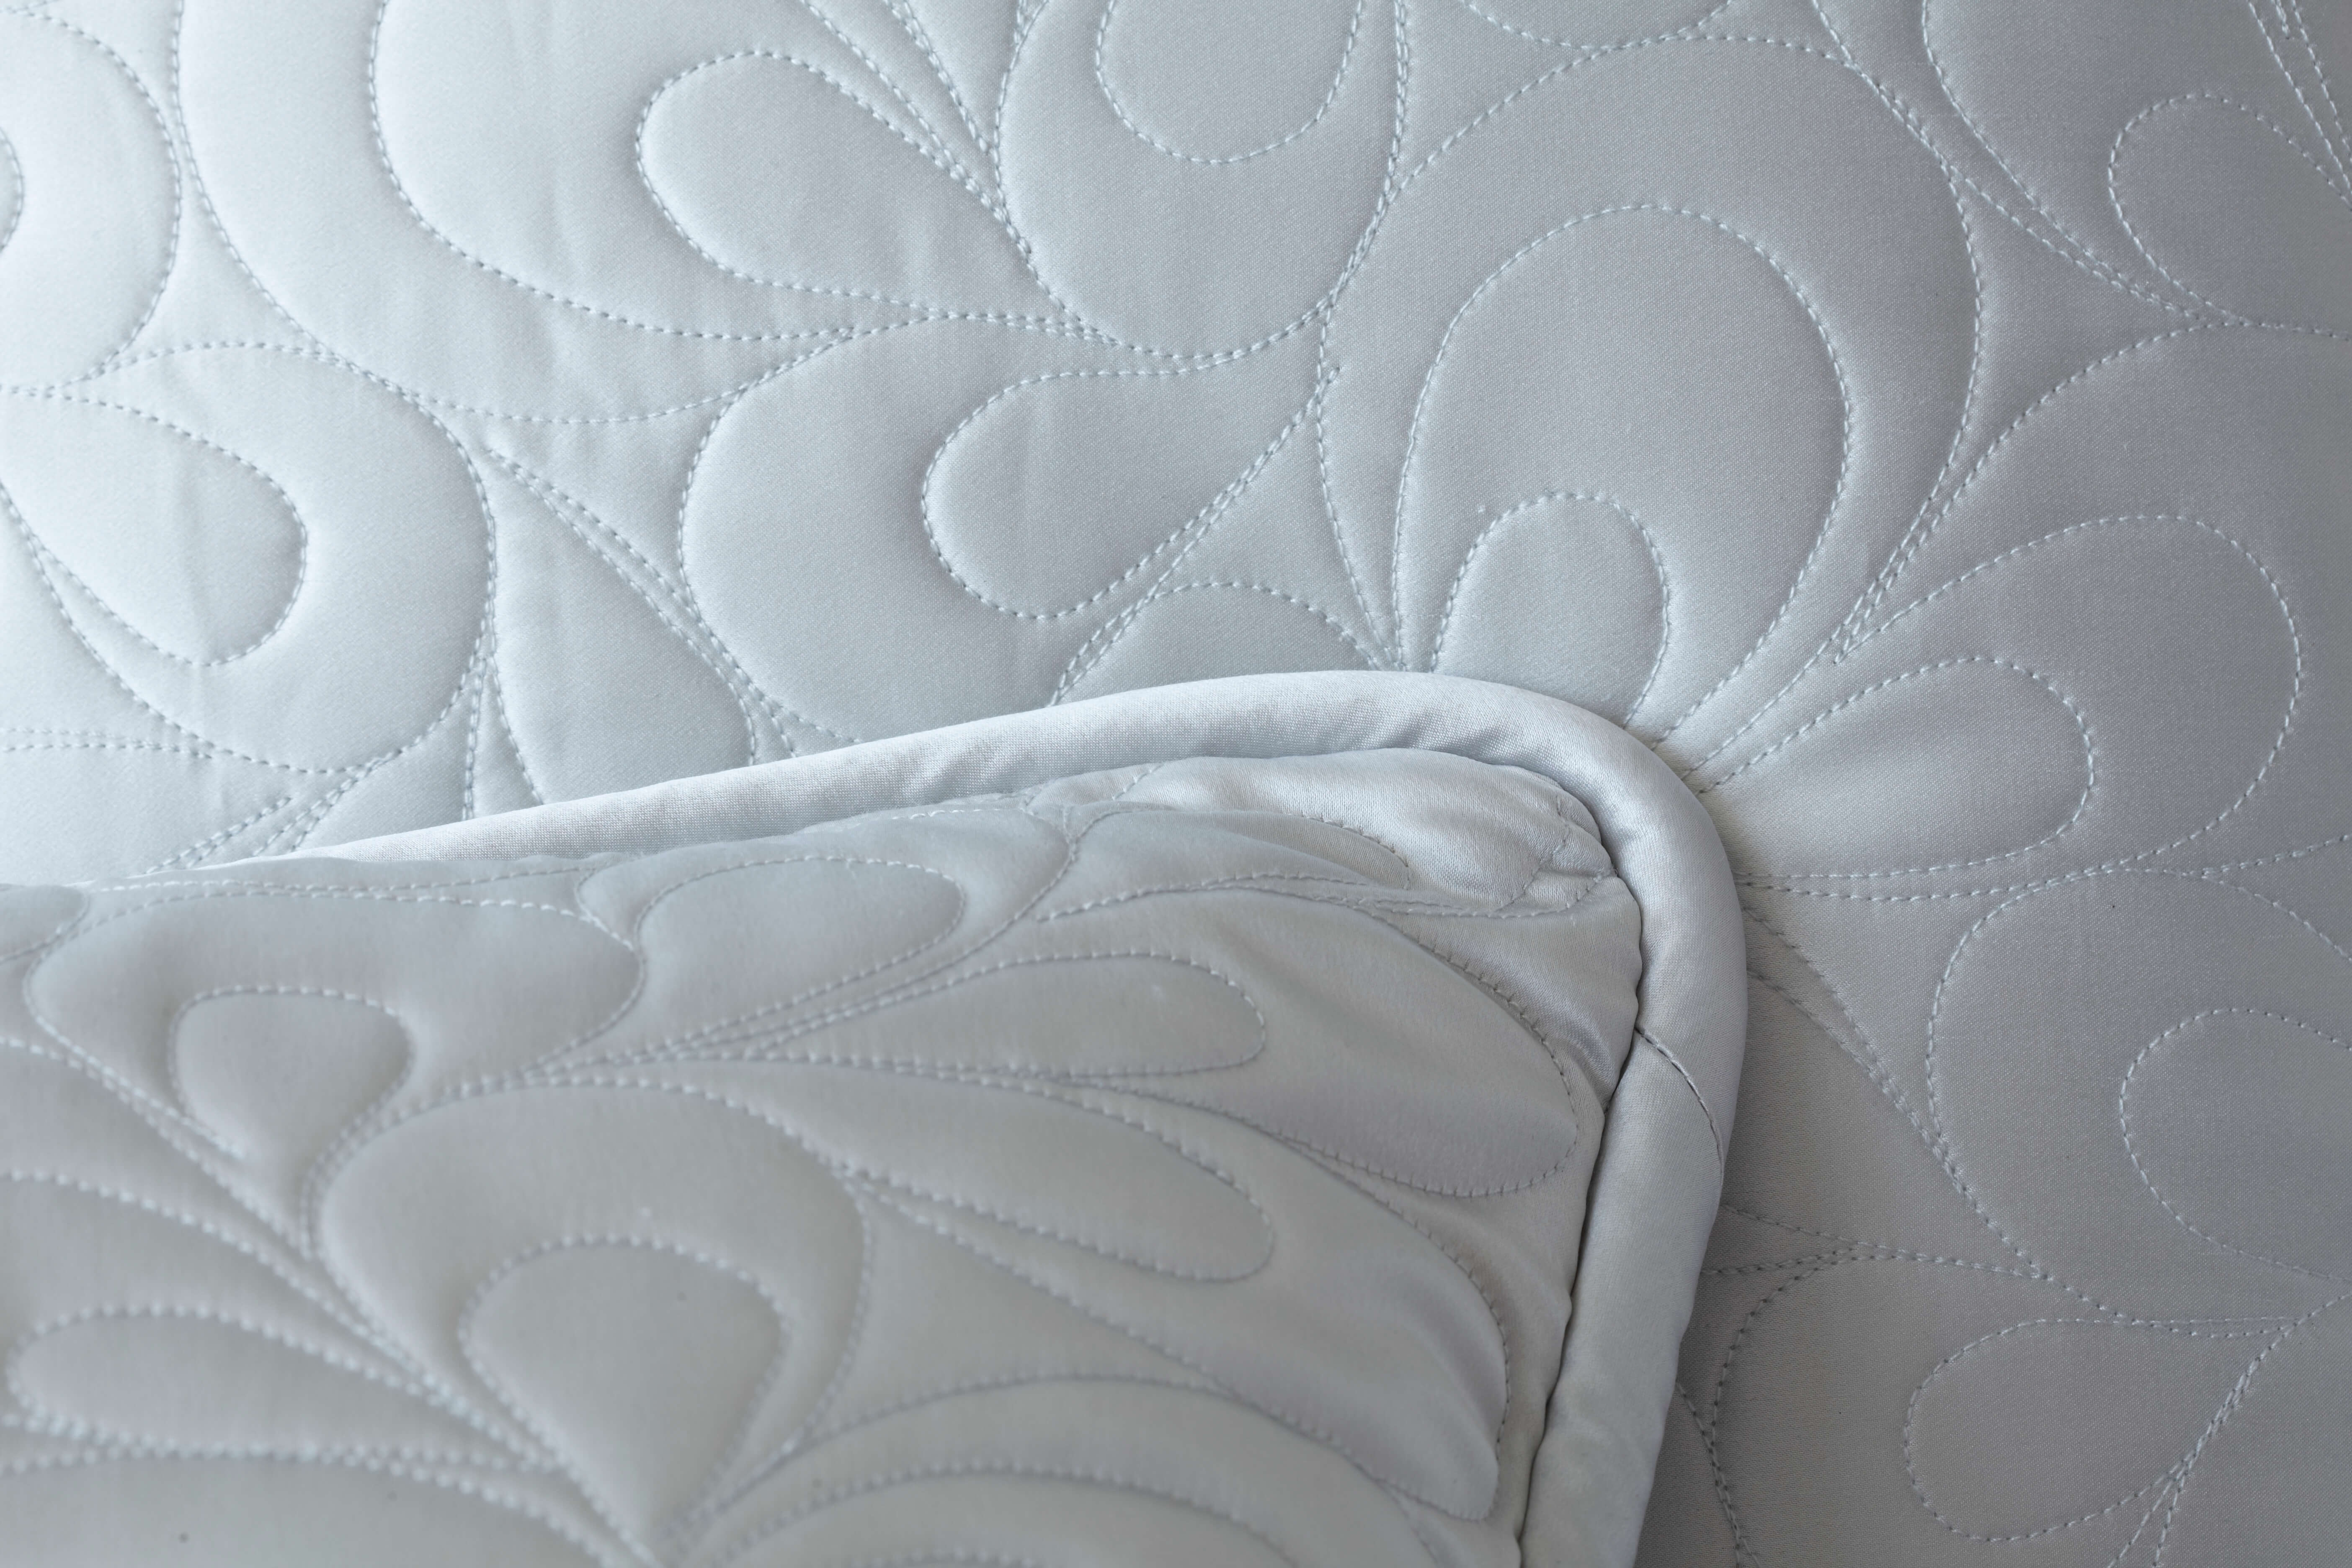 7069583c4eea Have you ever wondered why some silk sleepwear and bedding sellers on the  web seem to have the exact same products  Here s why  Many vendors you  encounter ...